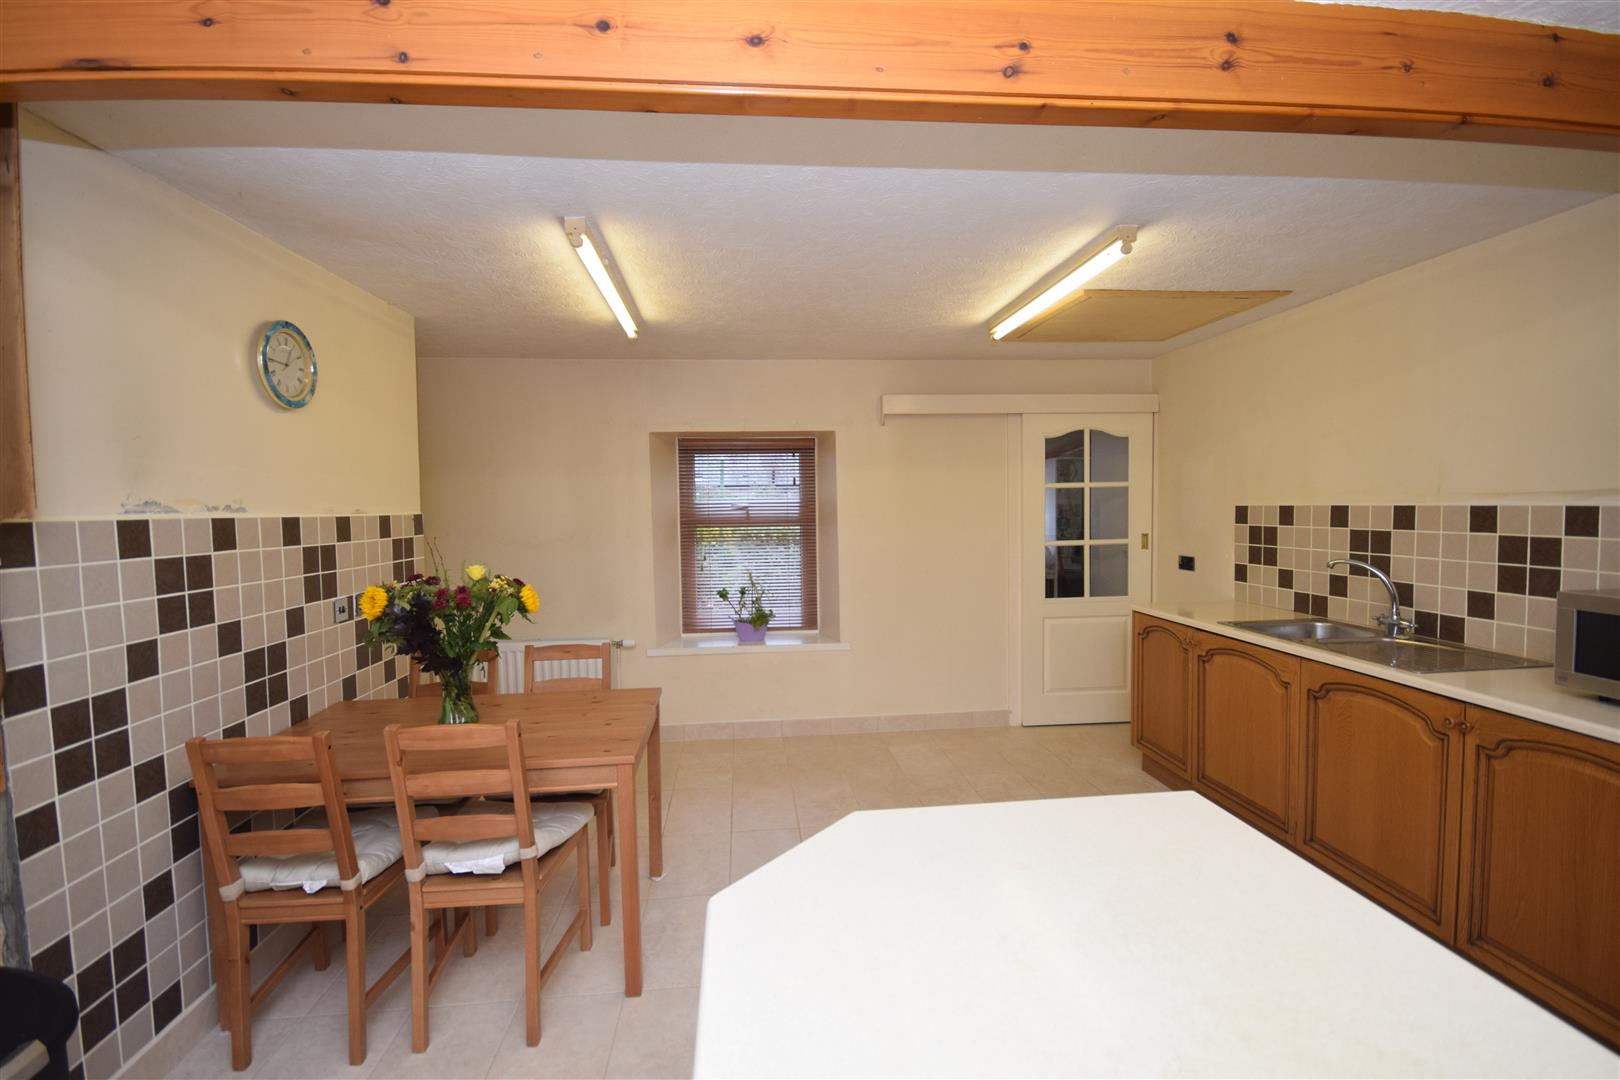 Jessamine Cottage, South Street, Rattray, Blairgowrie, Perthshire, PH10 7BY, UK